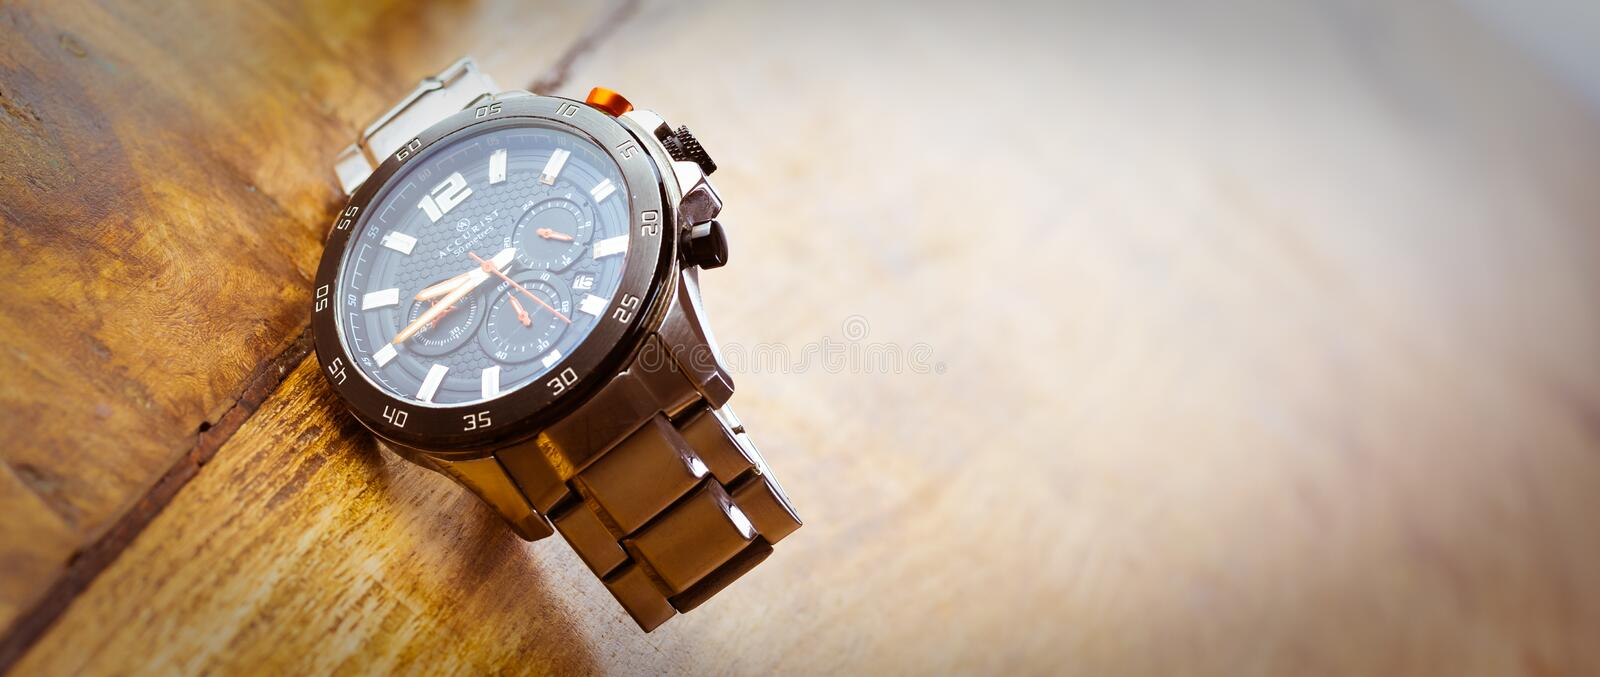 Alloa, Scotland - 17 July 2019 - expensive watch isolated on a wooden background stock photos